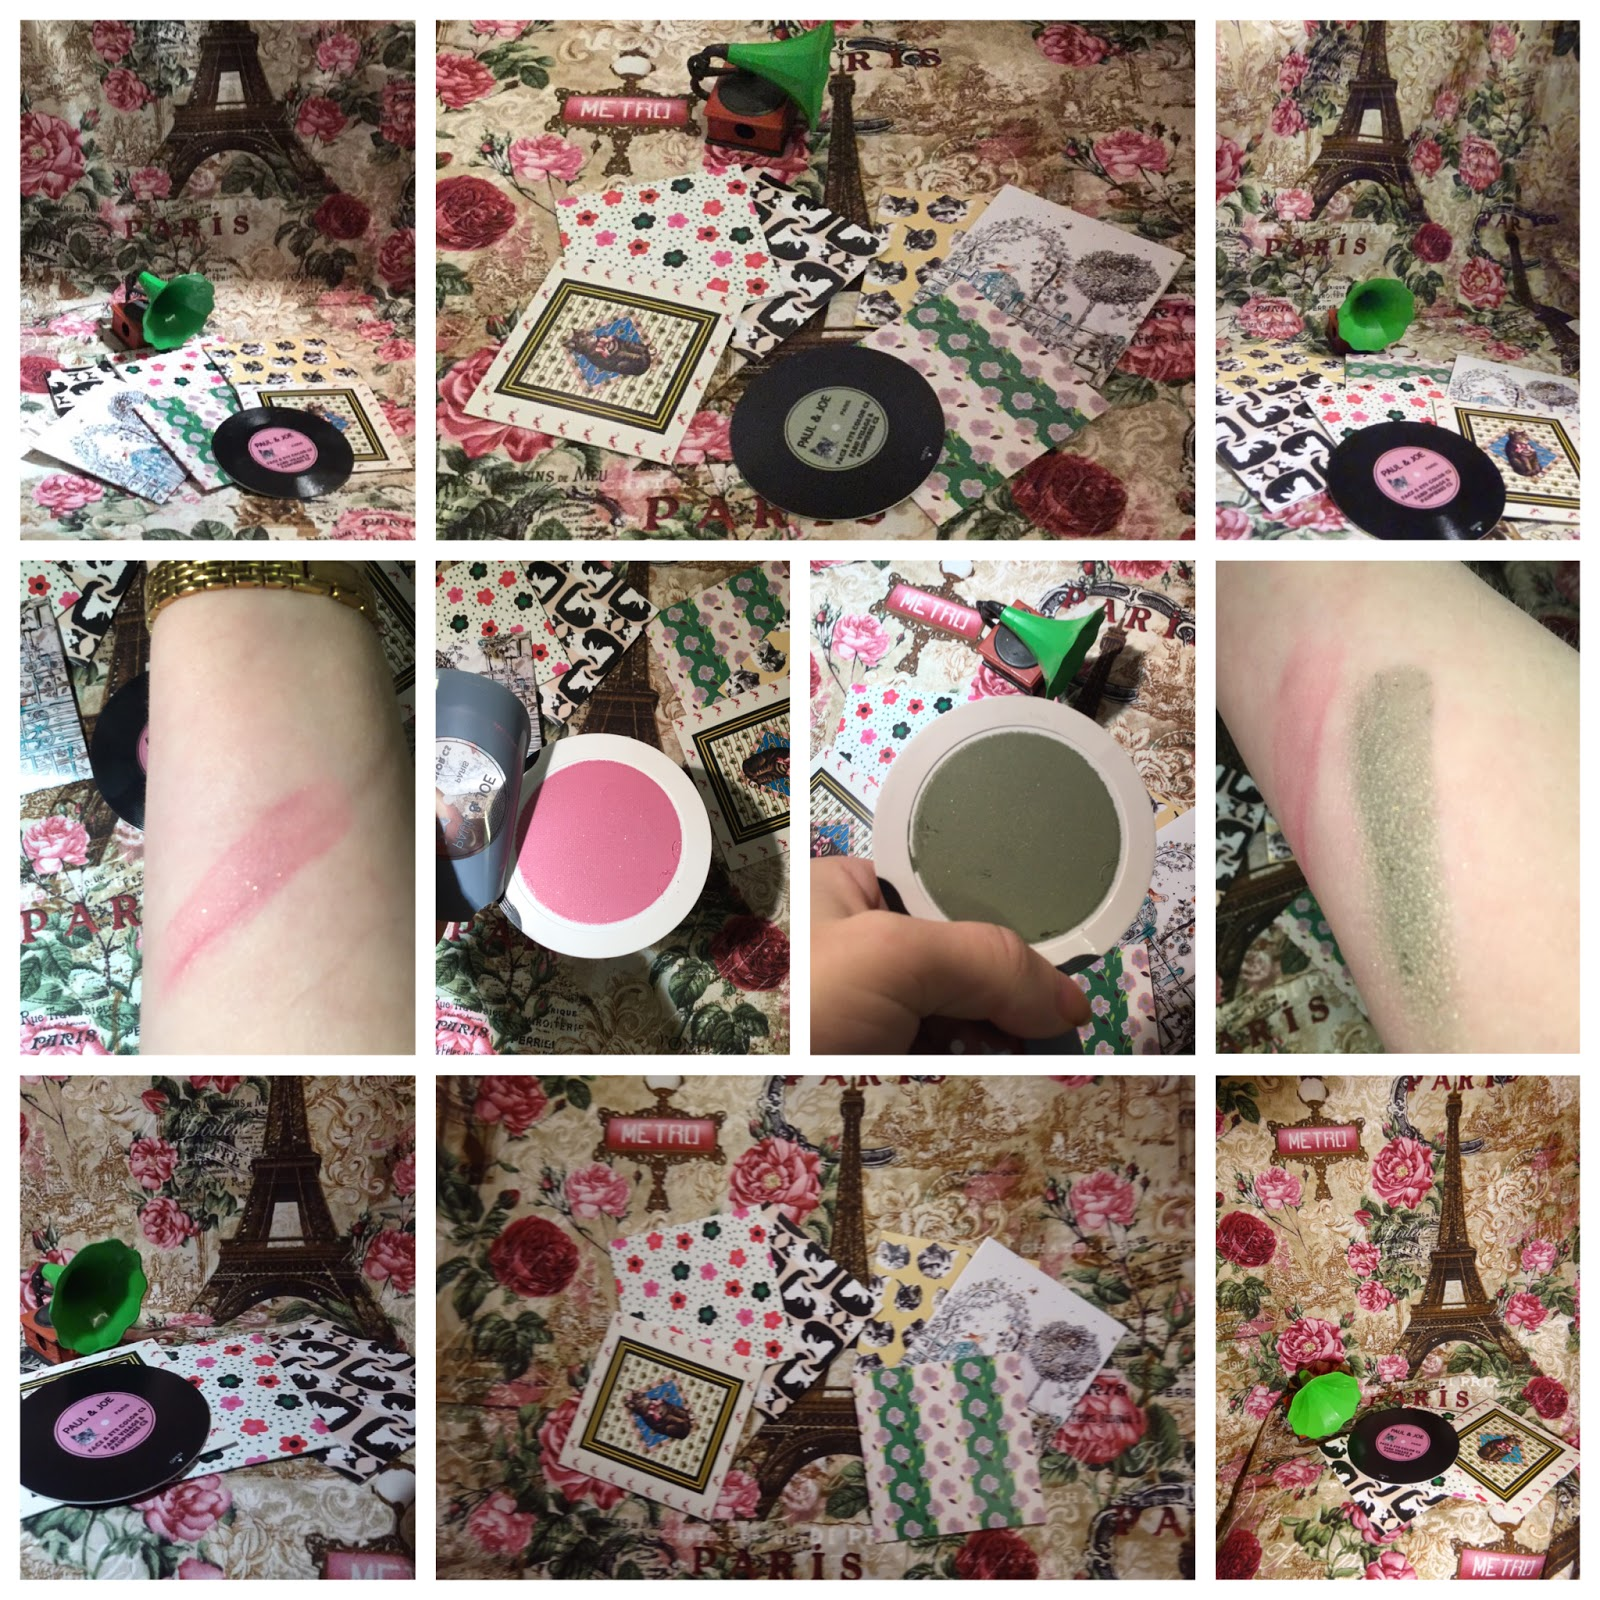 85376e6b59e1b Paul   Joe are known for imprinting makeup into thin layers and then using  it creatively. The limited edition face powders have been made into mini  records ...